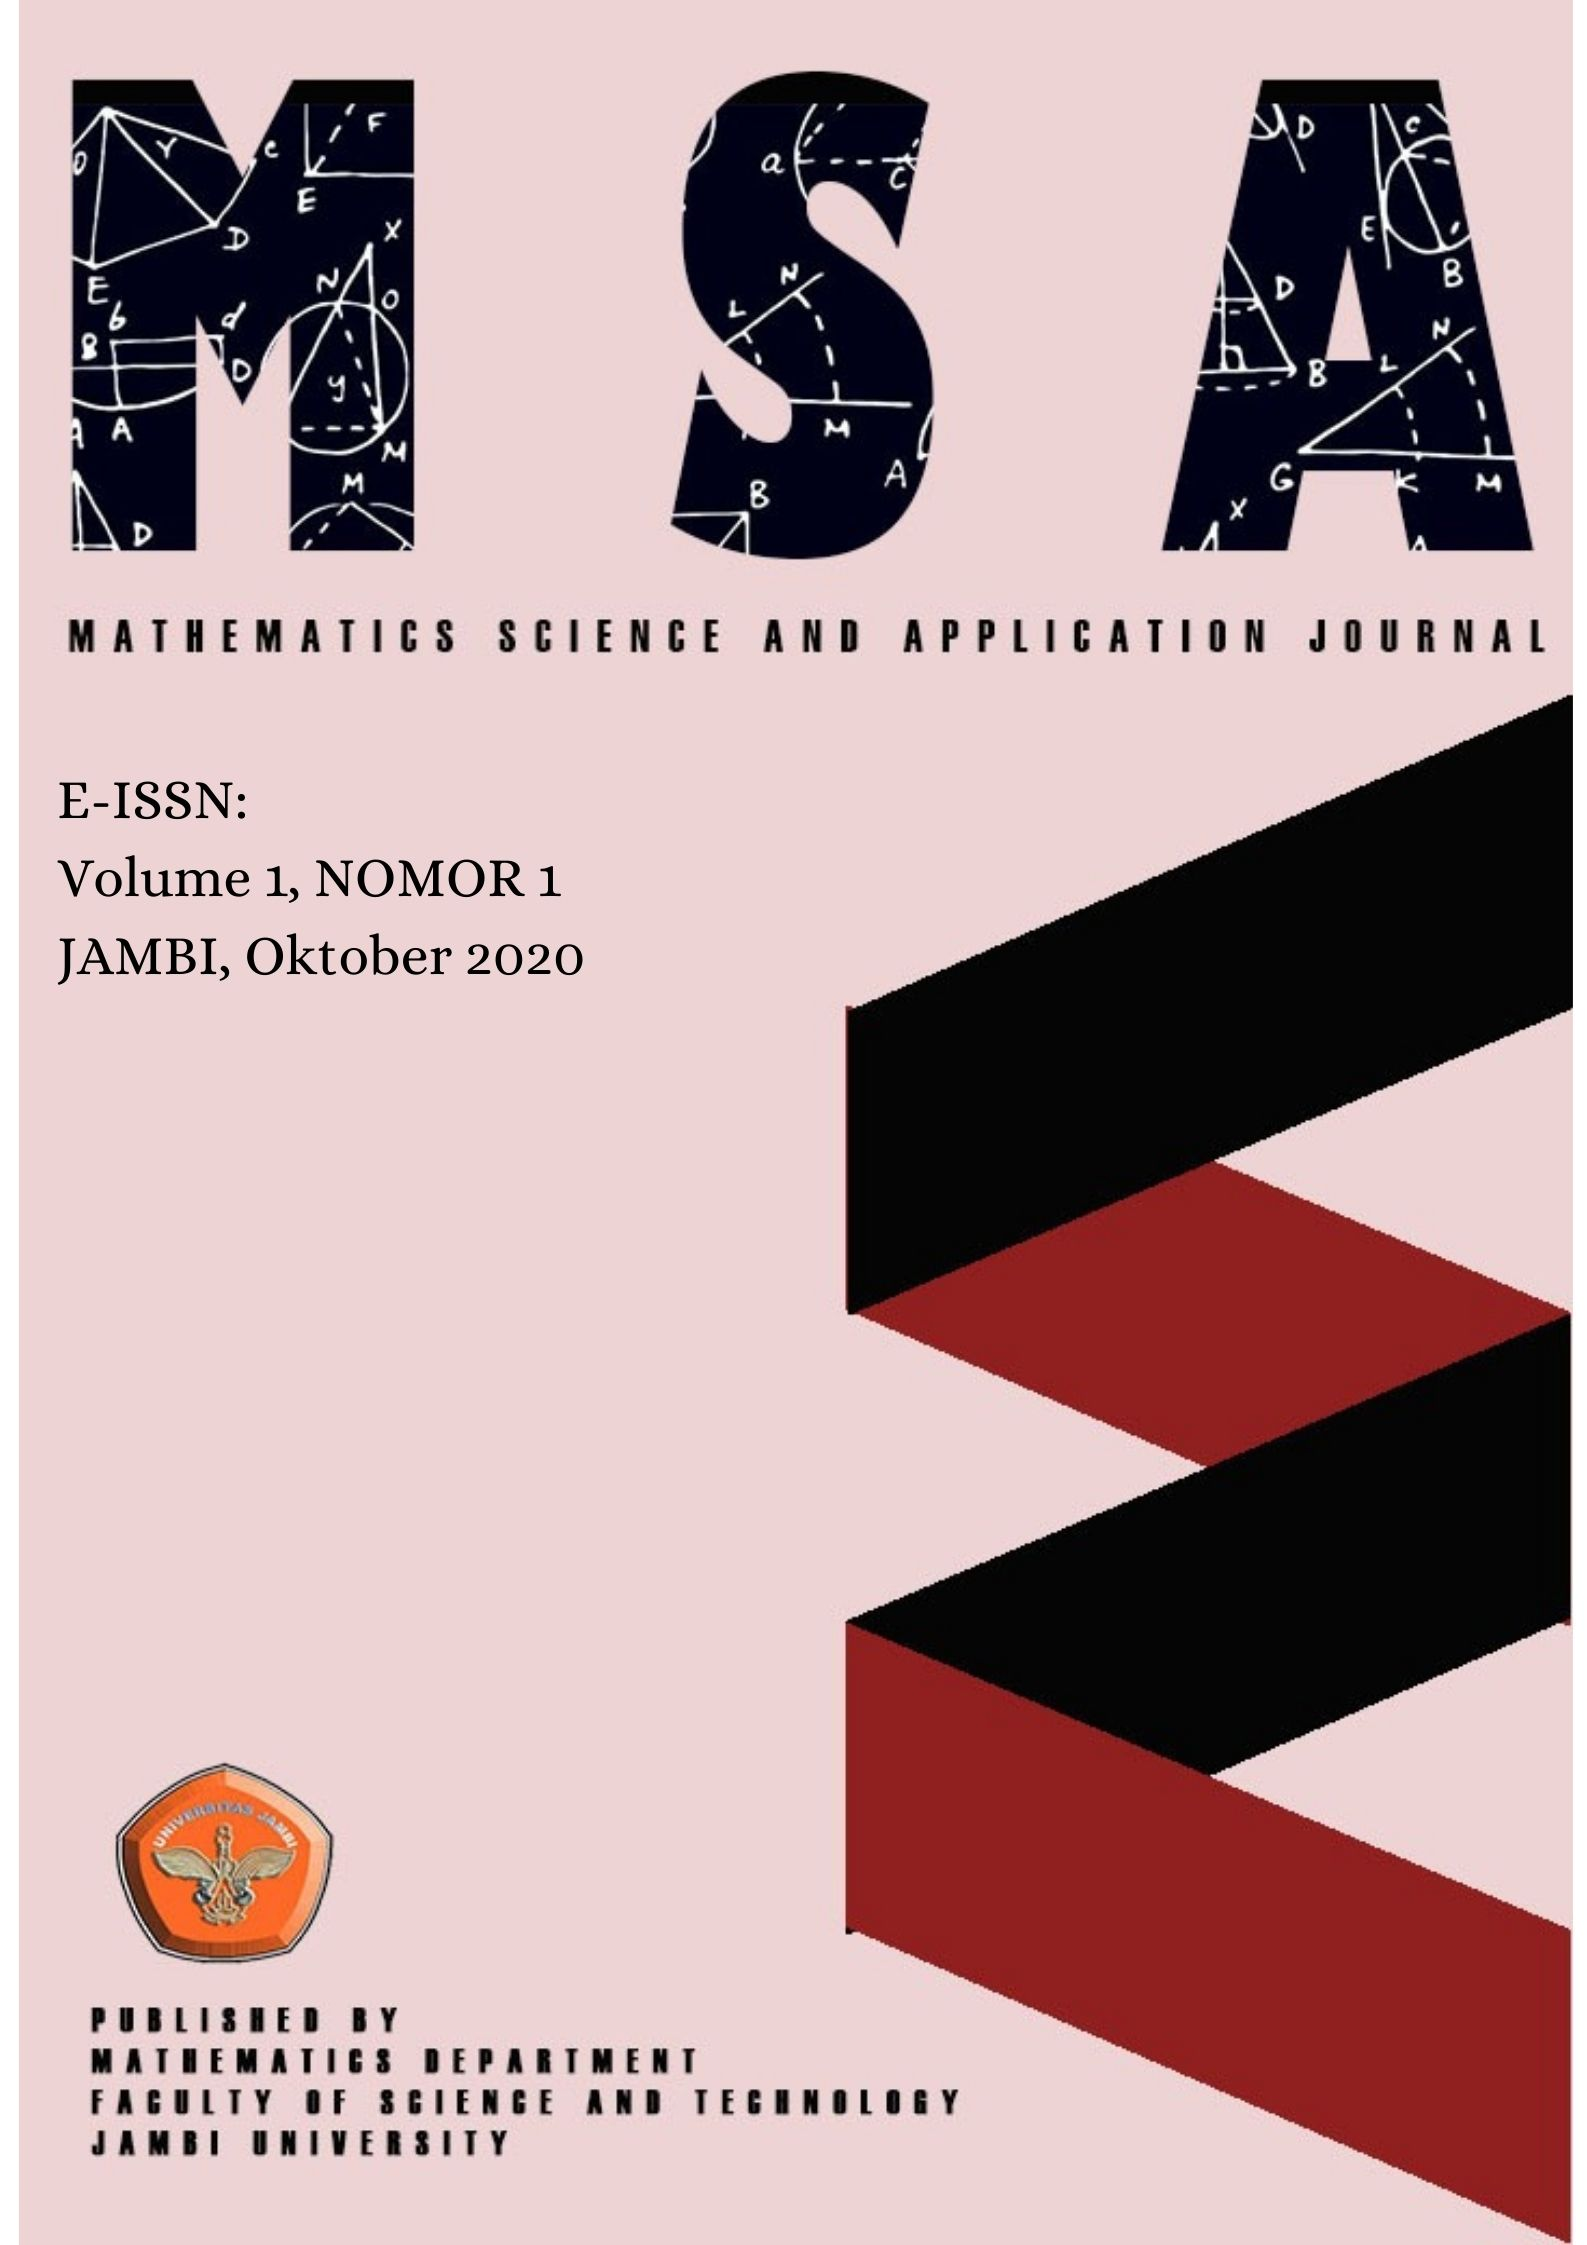 View Vol. 1 No. 1 (2020): Mathematics and application Journal